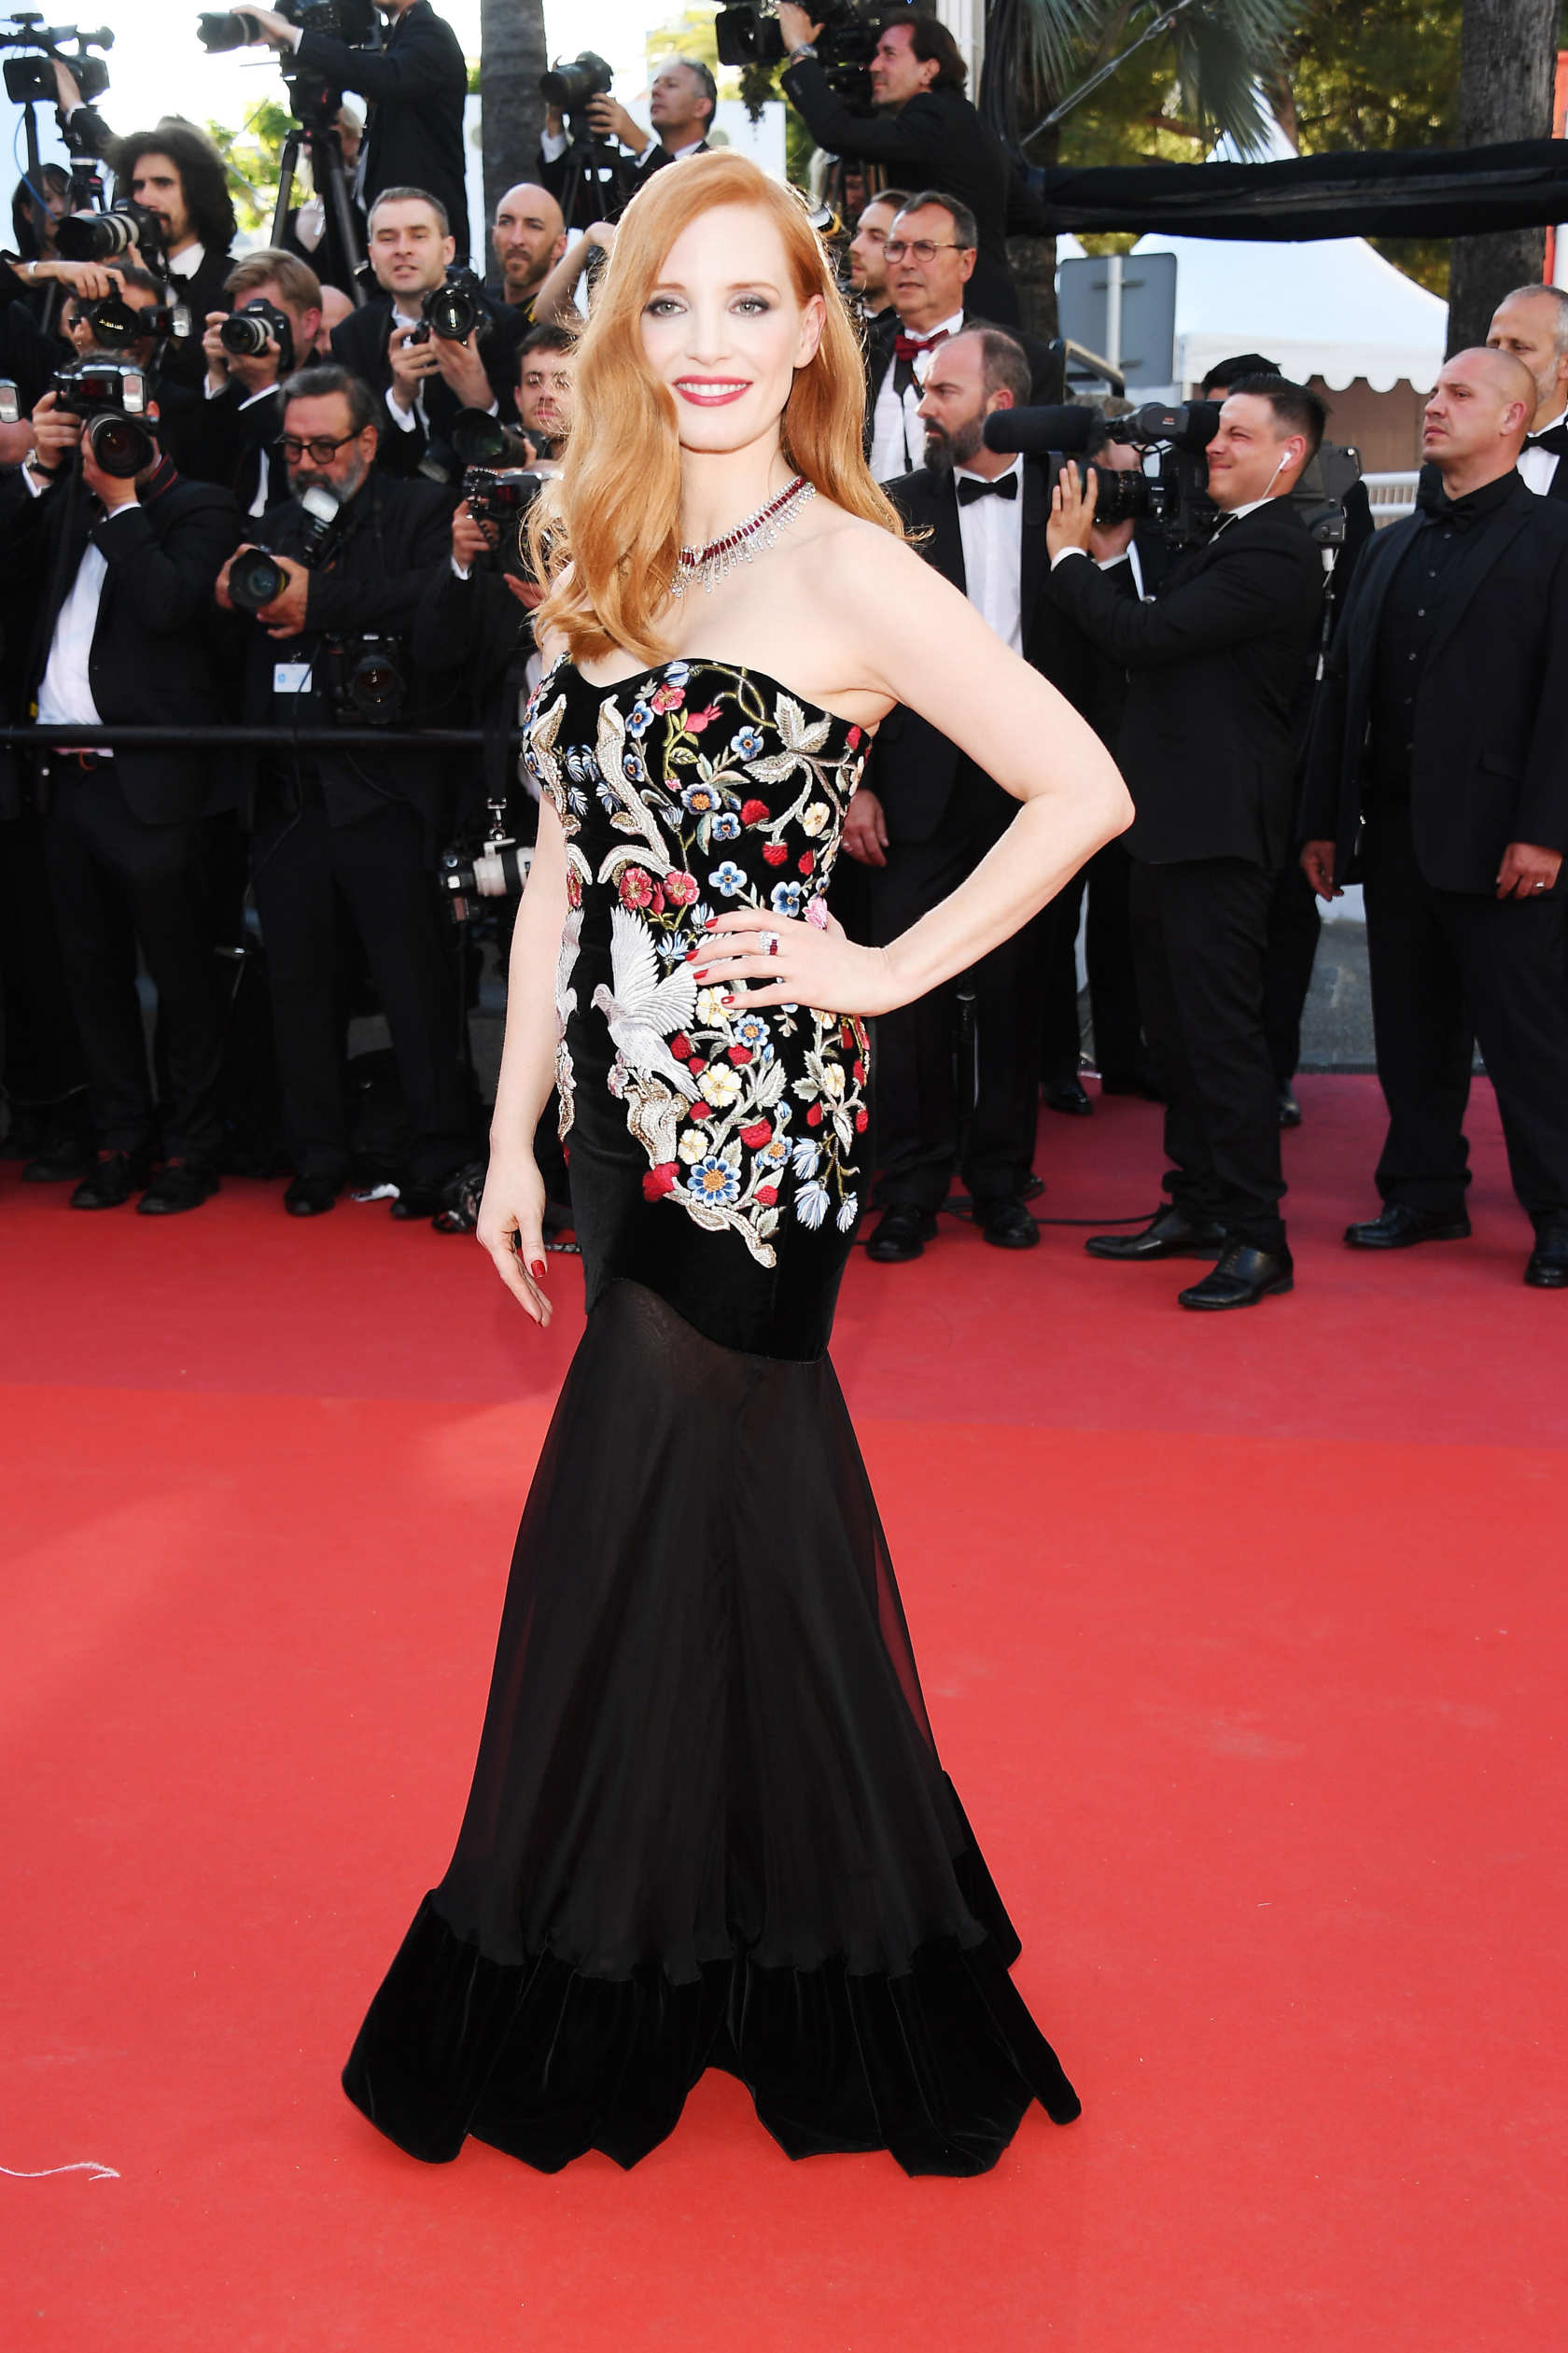 Jessica Chastain at Cannes 2017